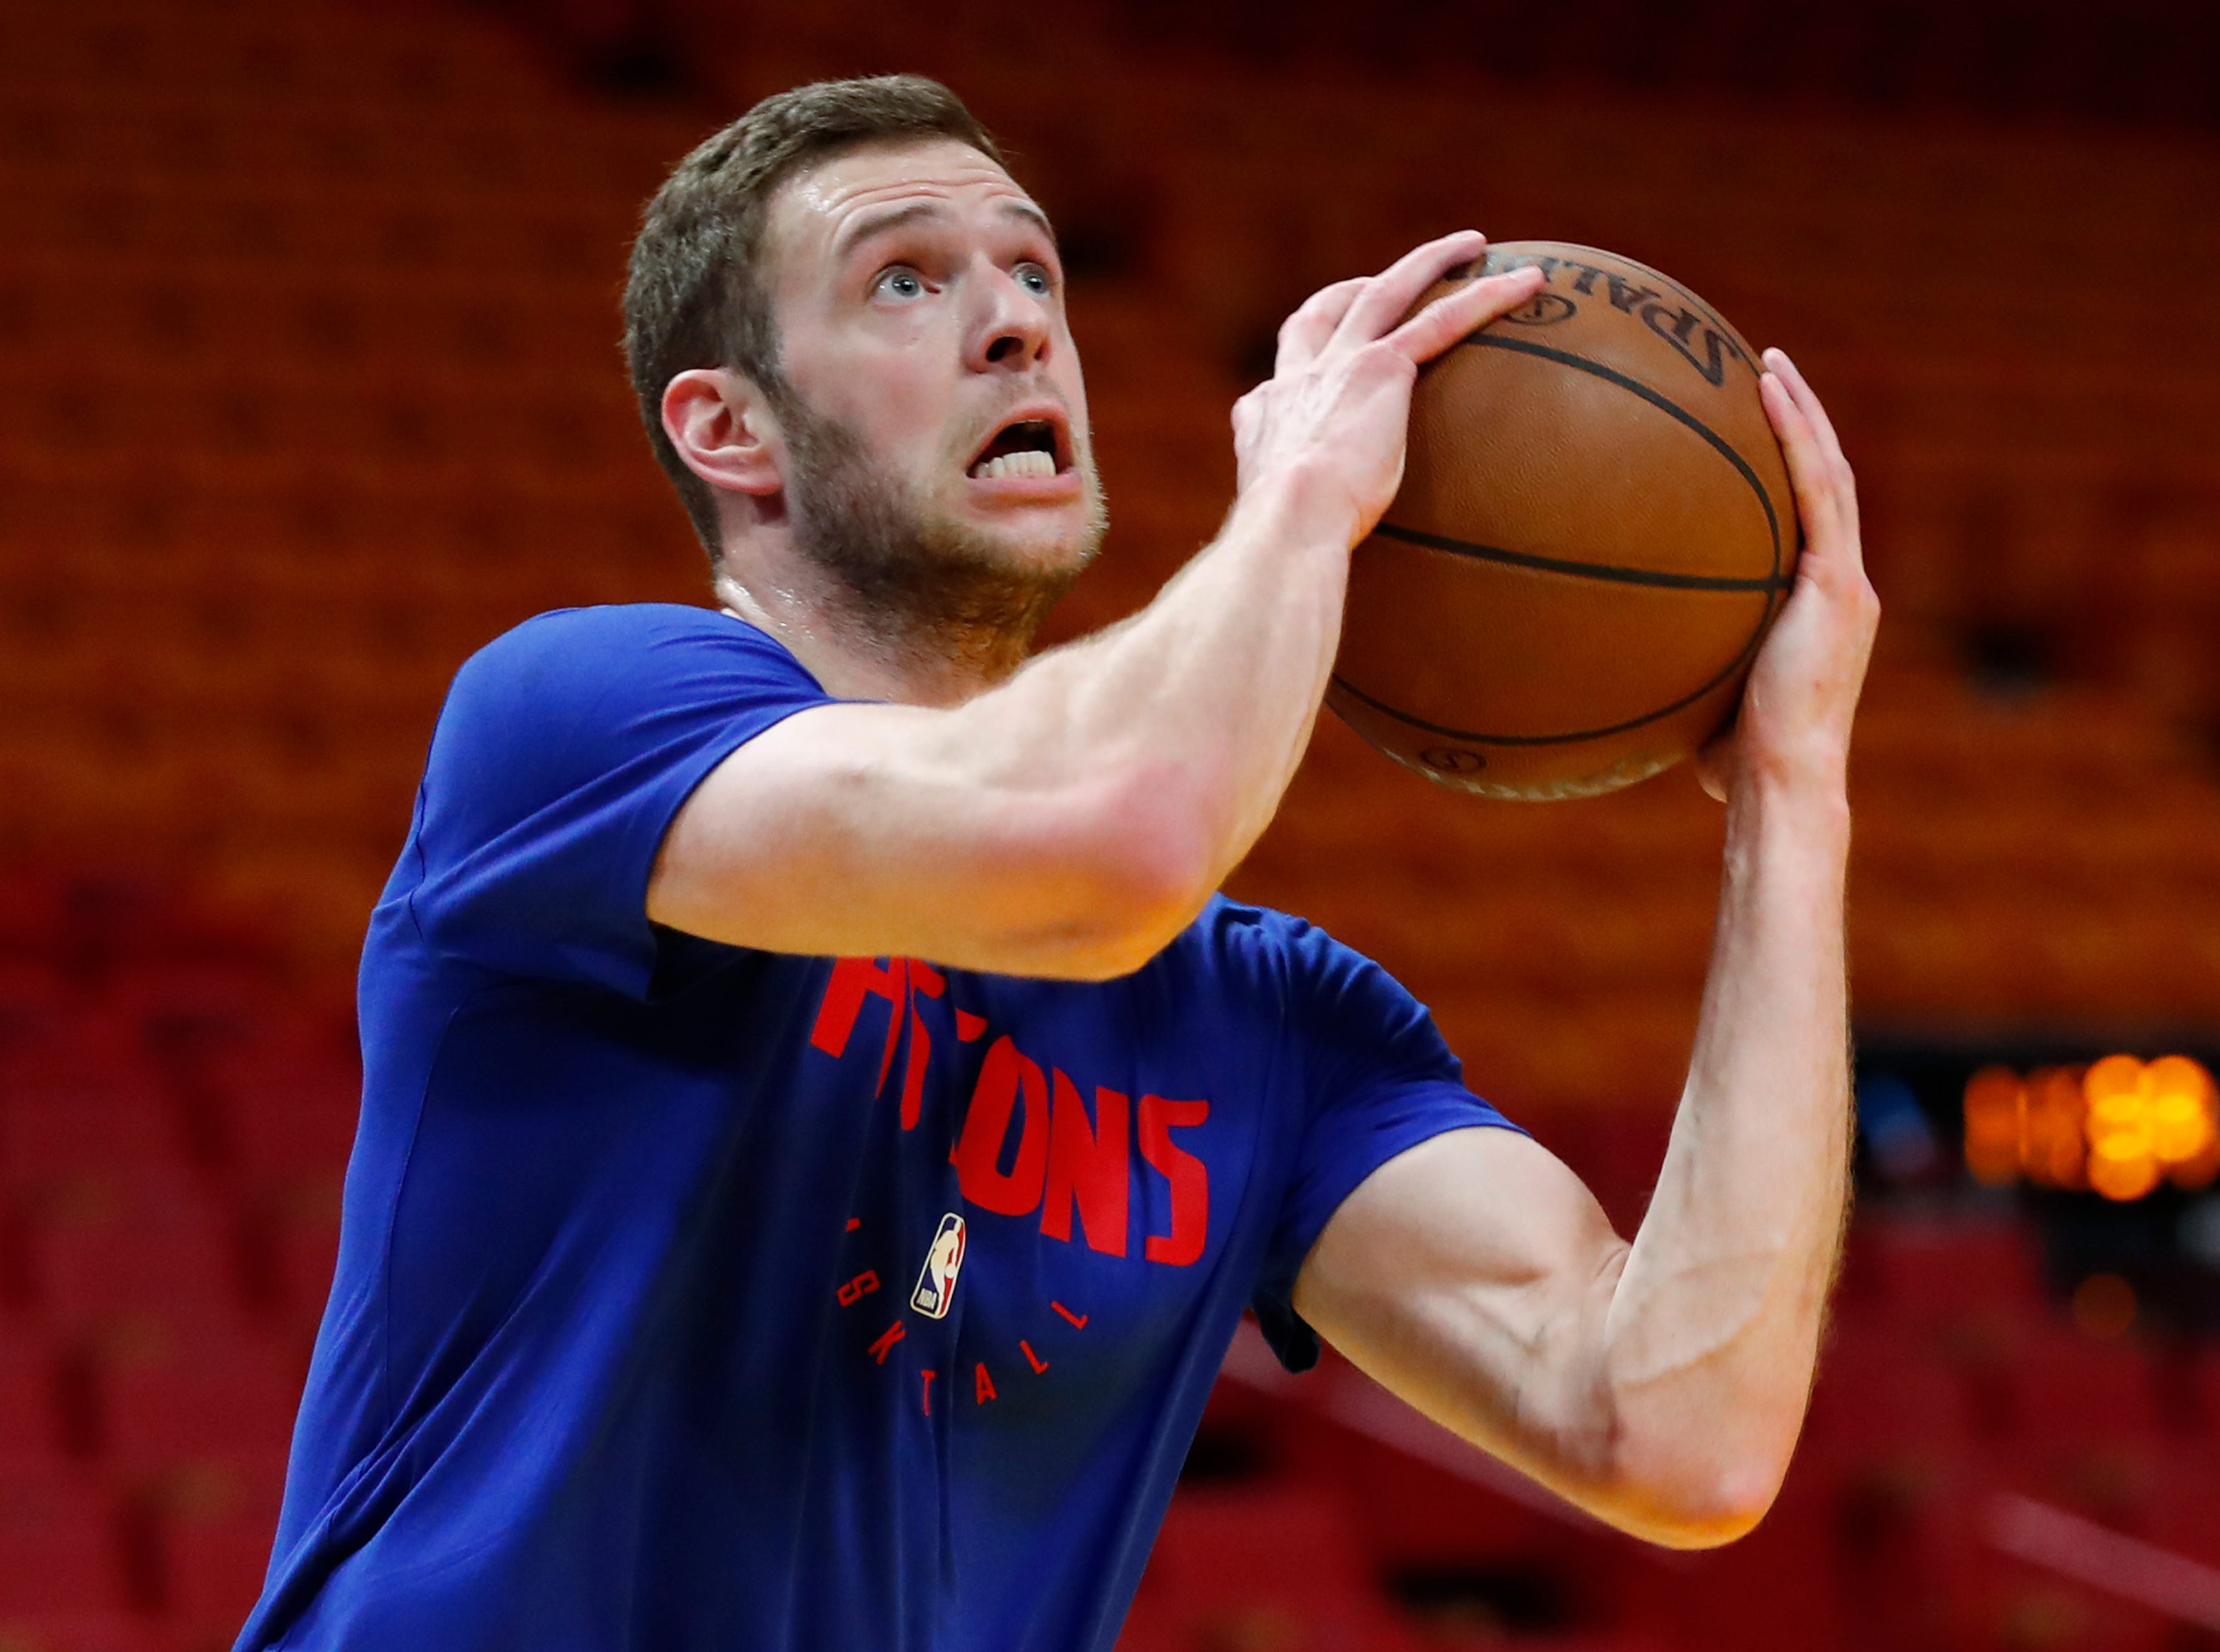 Detroit Pistons forward Jon Leuer warms up before the start of an NBA basketball game against the Miami Heat.